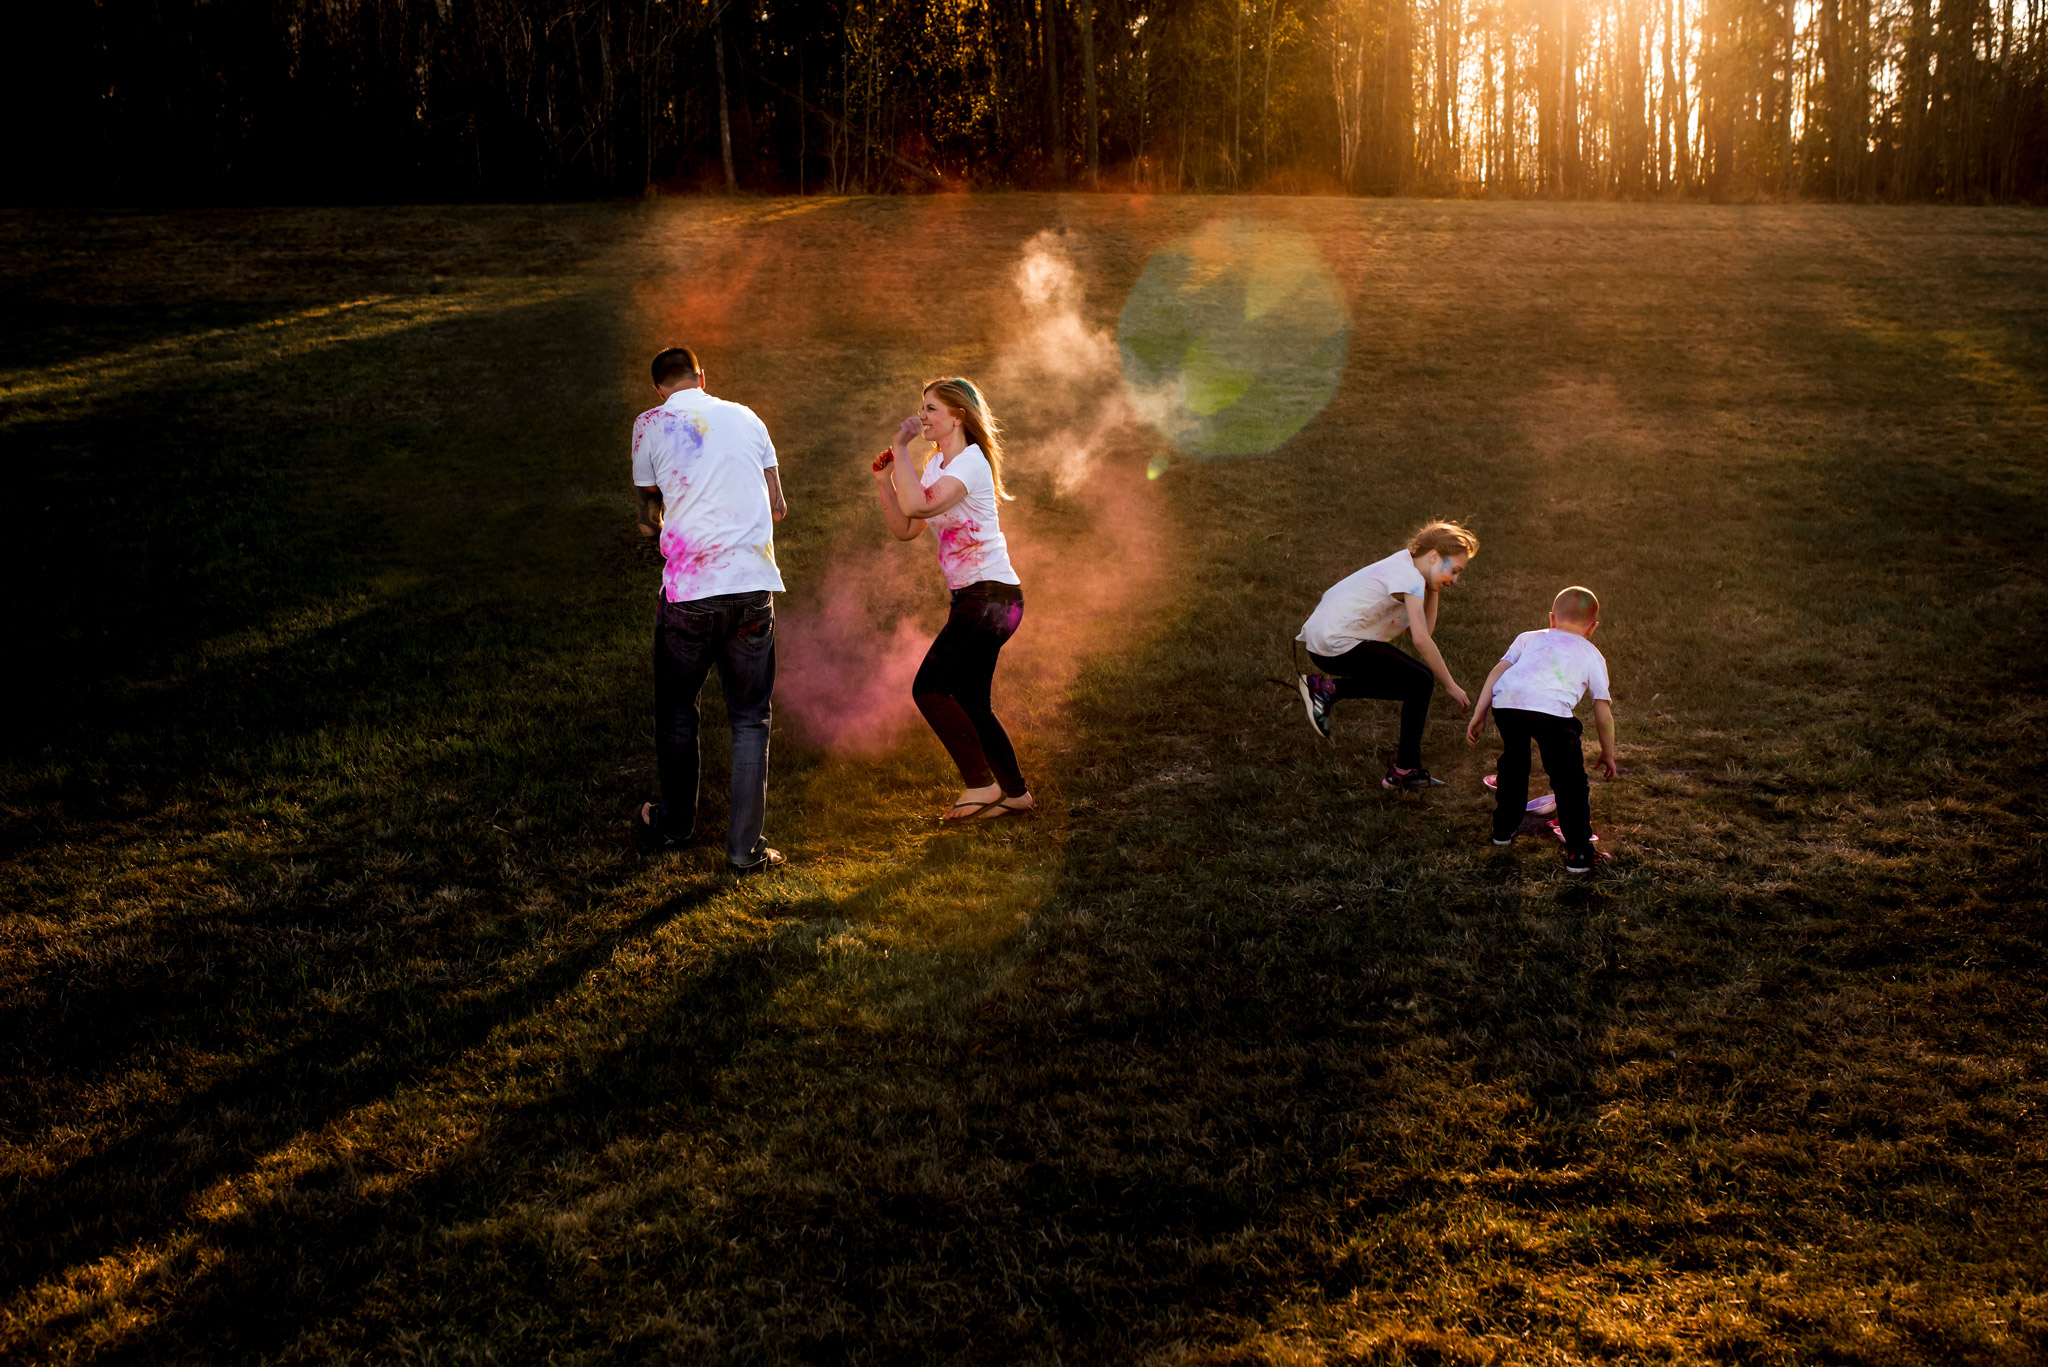 This is a self portrait with my family. I set up the tripod and the timer, and we had a crazy paint fight! I love that I was able to be in the frame, because I was there too! I have been trying to do this more lately to ensure I have captured some moments with myself and my little family.